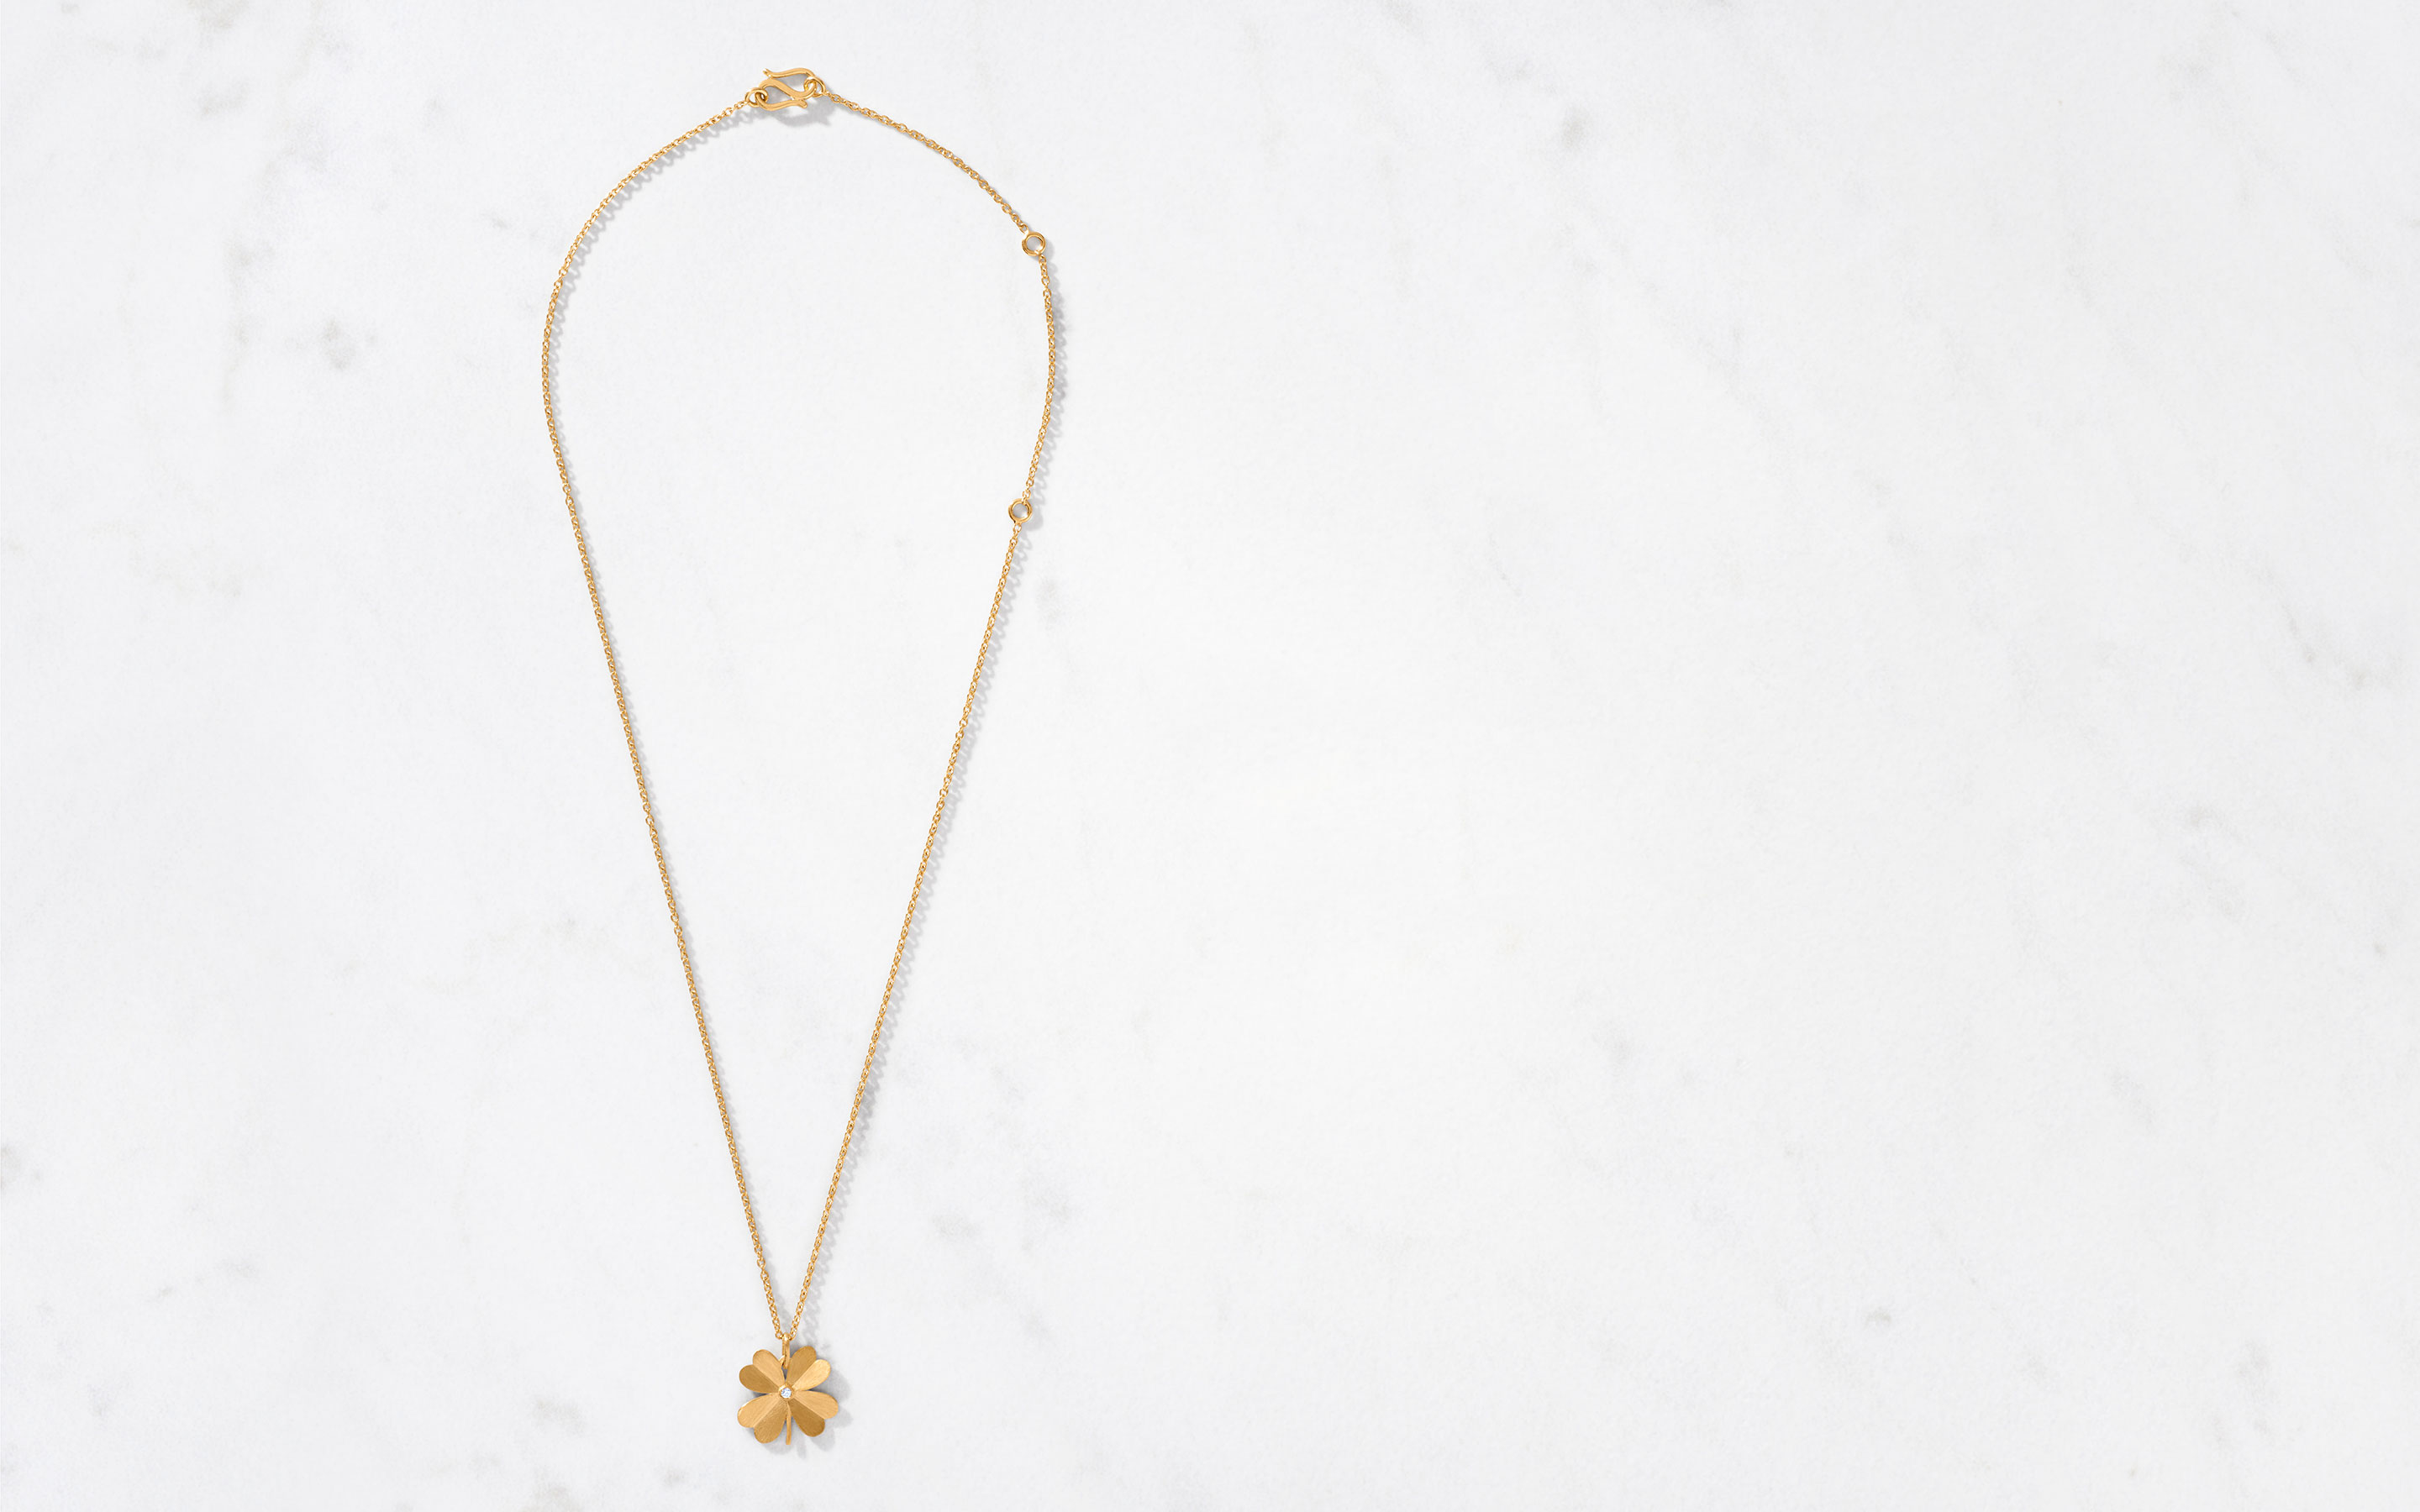 sophisticated 22 karat gold clover necklace satin finish with a center cut round diamond